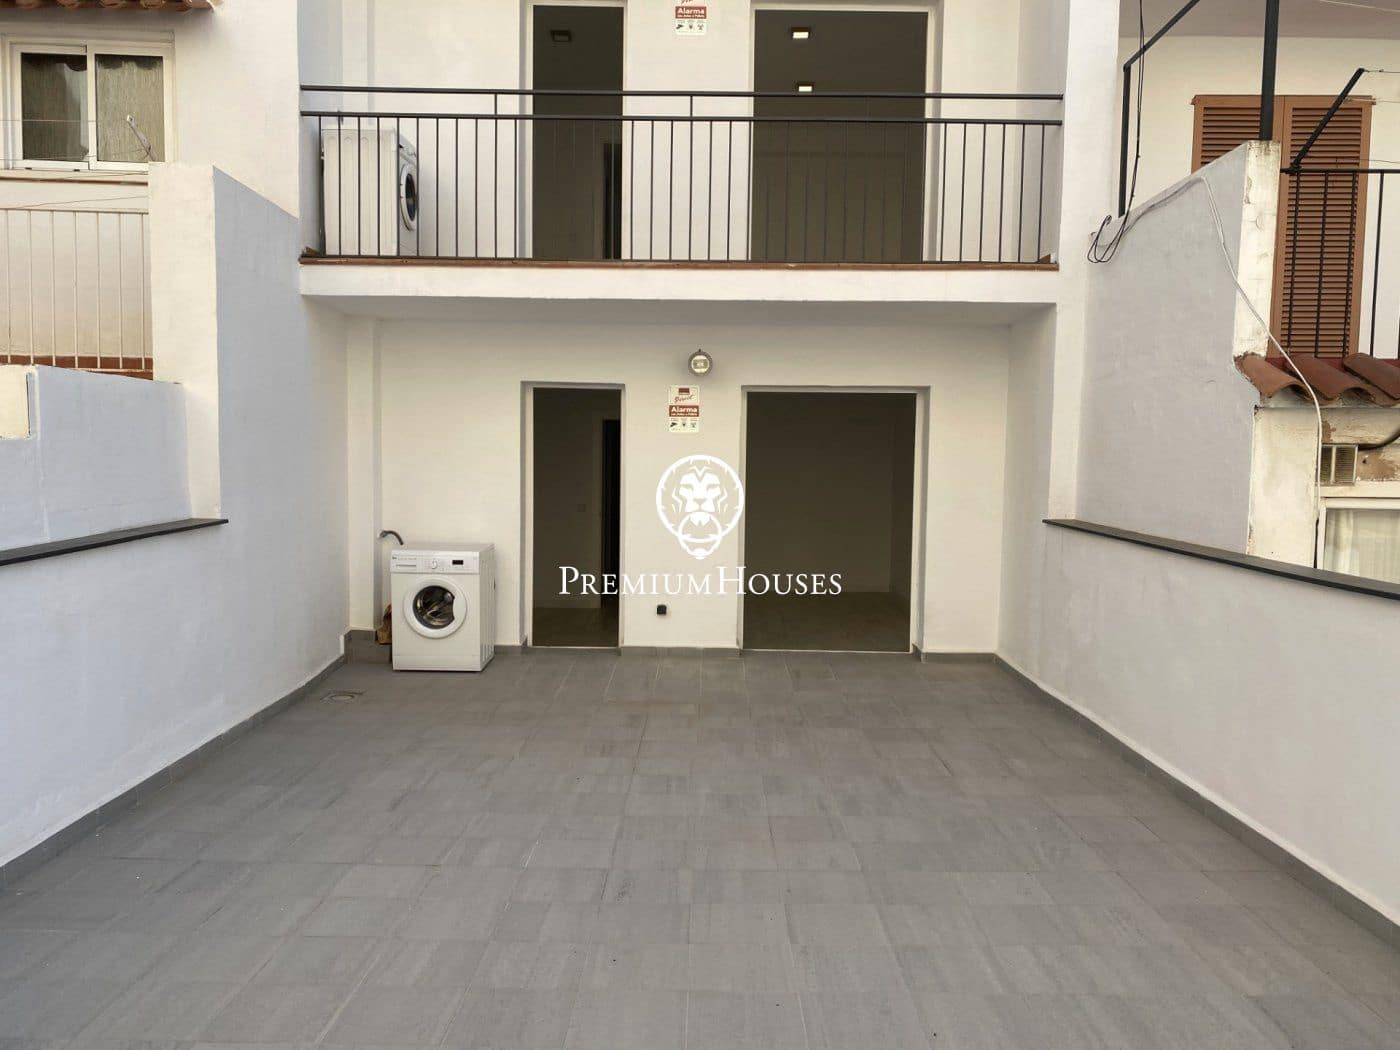 3 bedroom Apartment for sale in Sitges - € 519,000 (Ref: 6197855)